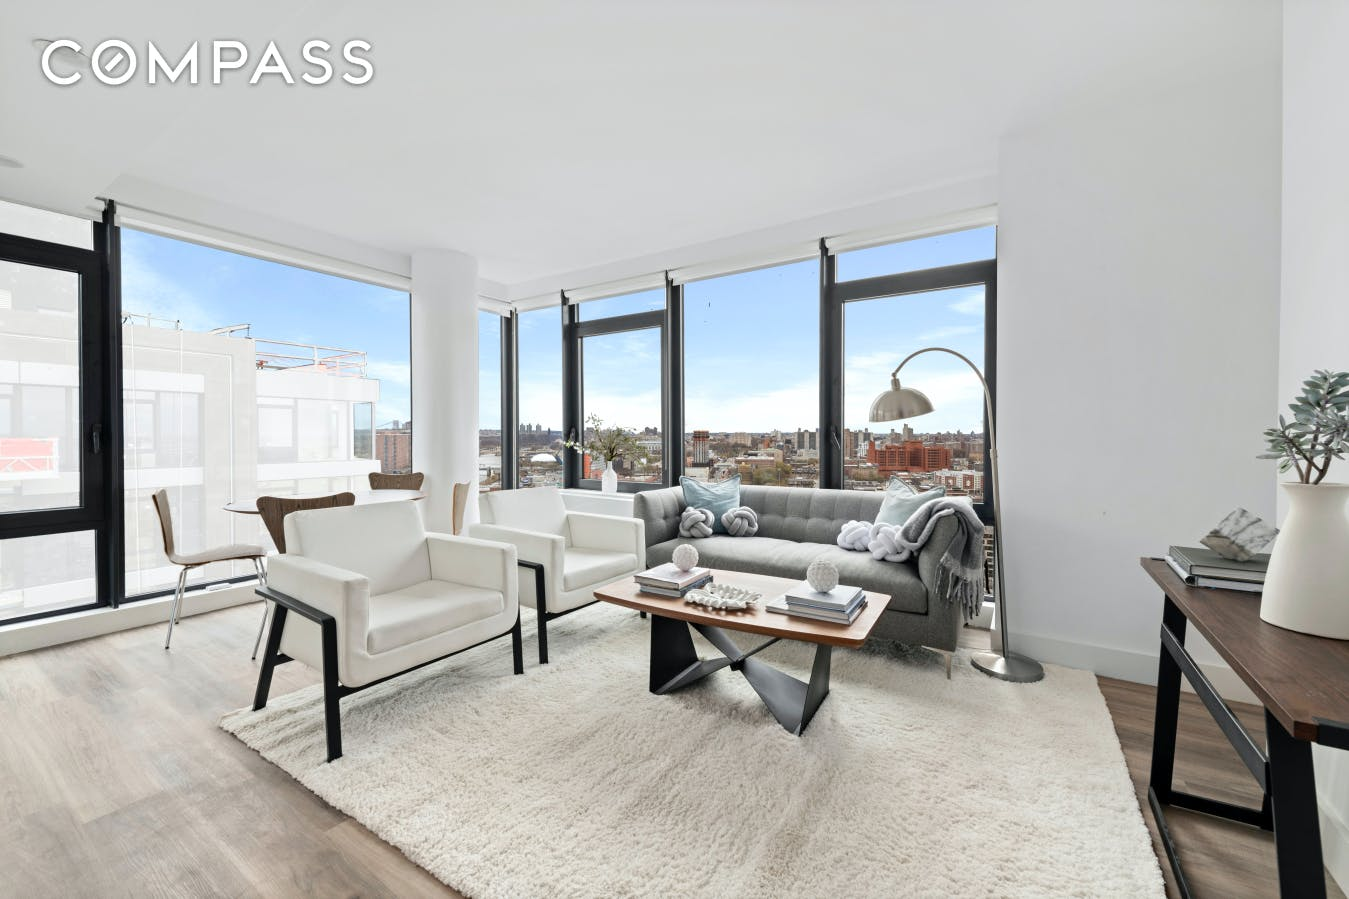 primary photo for 224 East 135th Street 406, Bronx, NY 10454, US